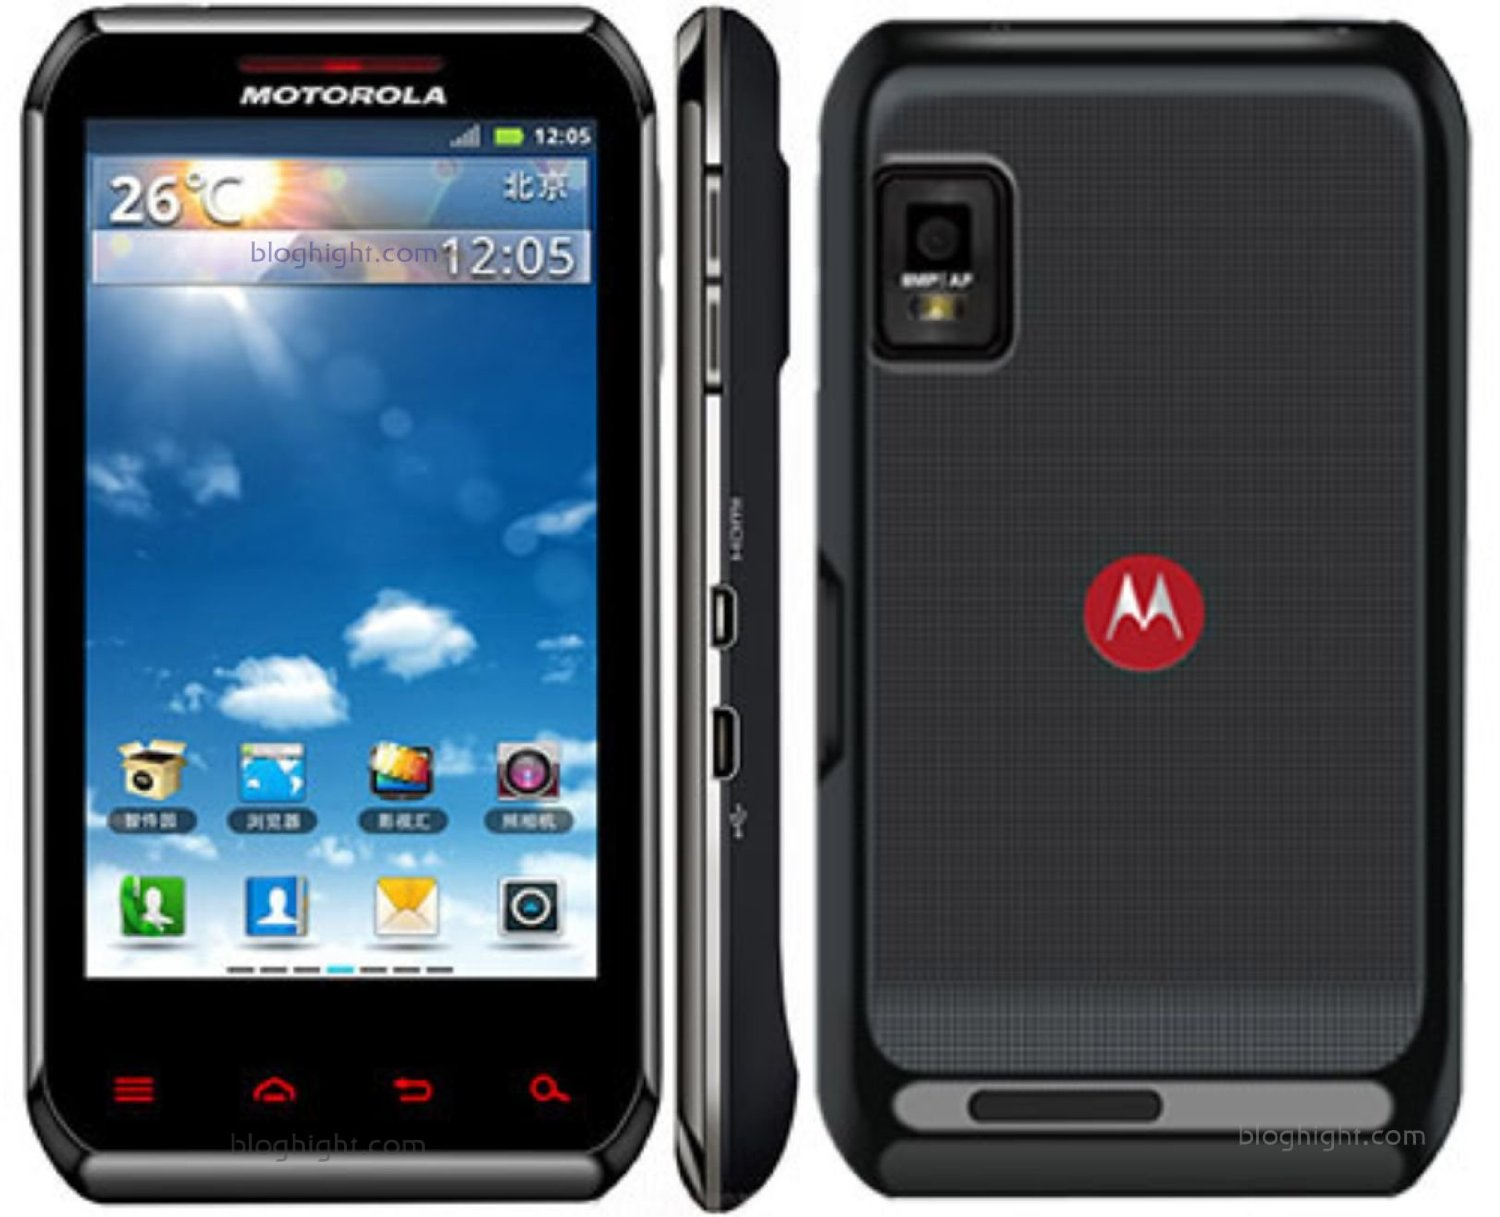 Phone Motorola Phone Android 10 best motorola android phones to put turbo in your life xt760 99 99